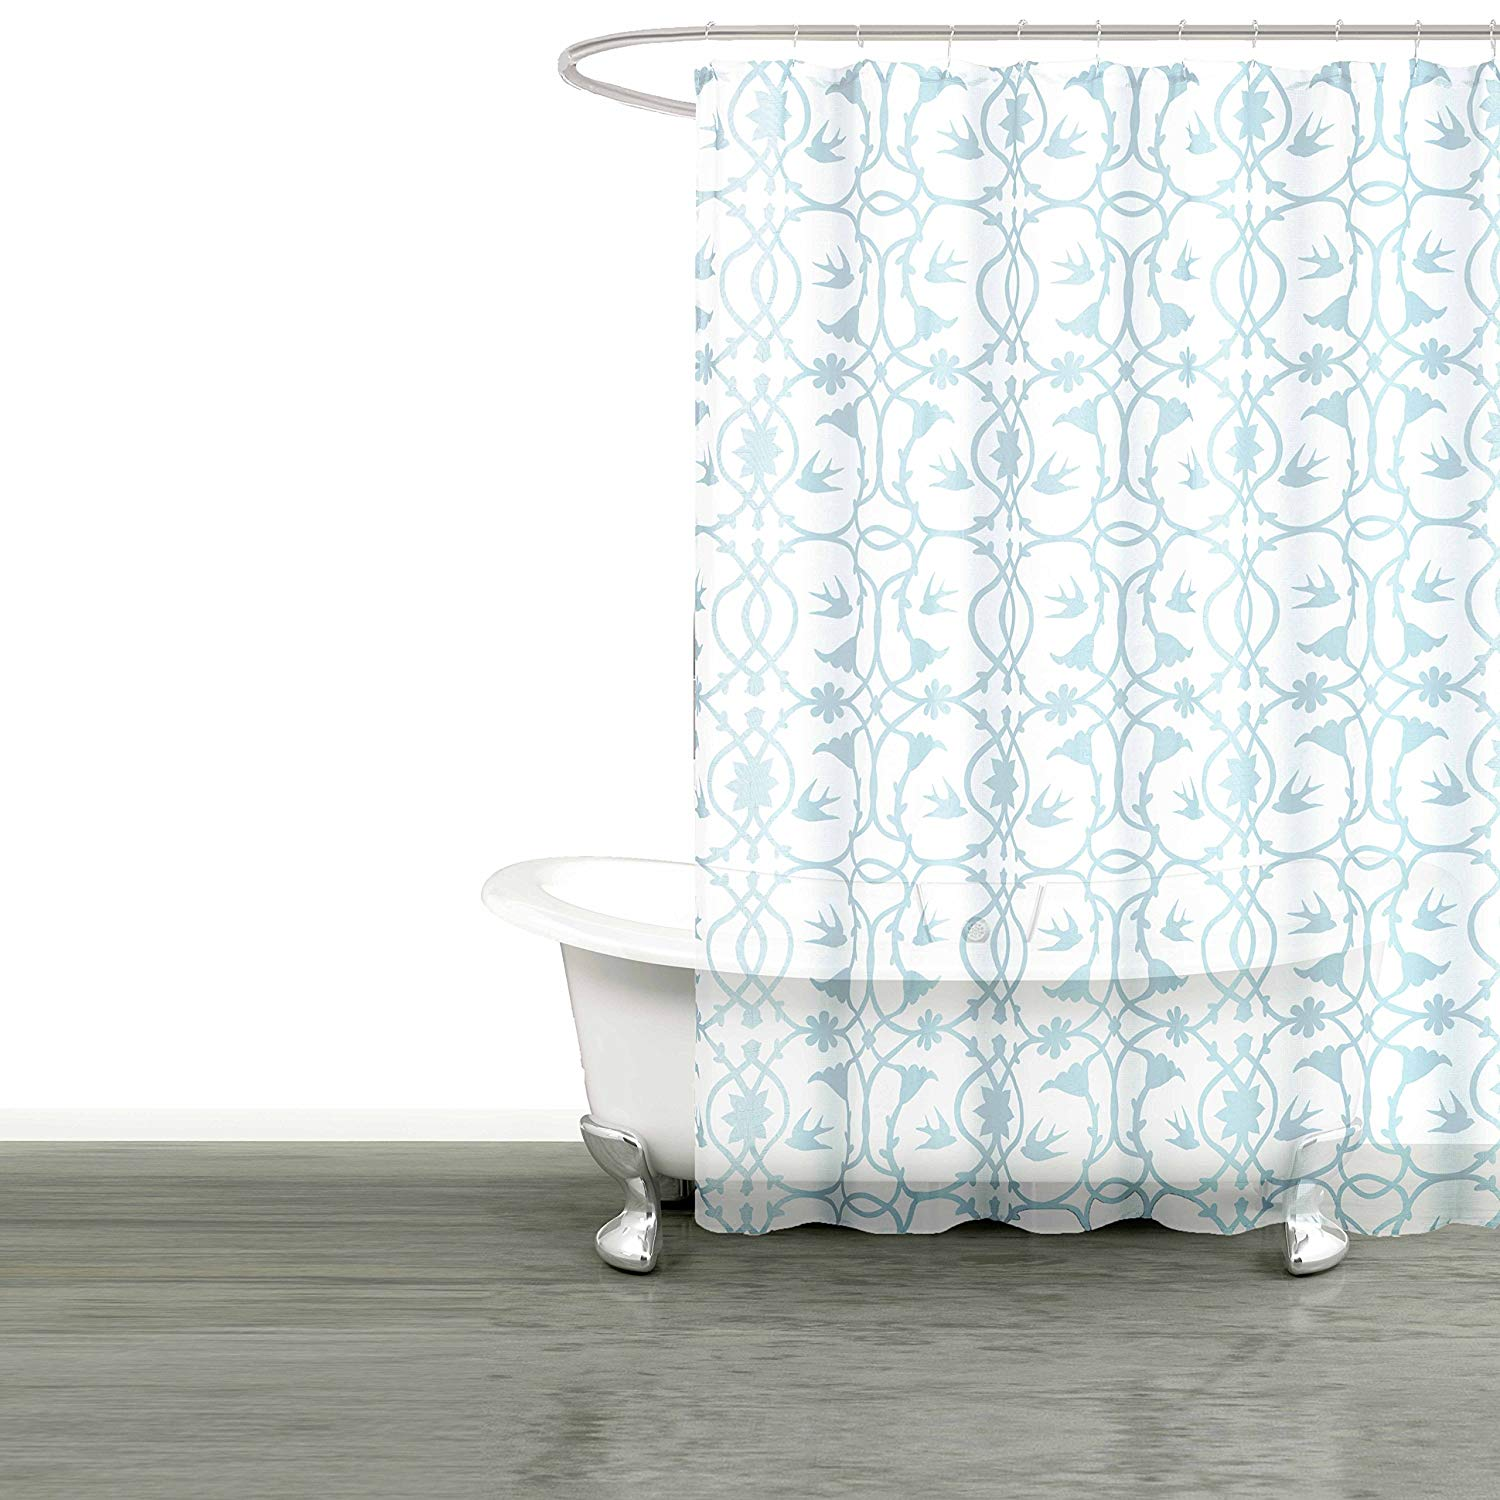 Get Quotations Bathroom And More Collection SHEER Fabric Shower Curtain White With Blue Bird Flower Vine